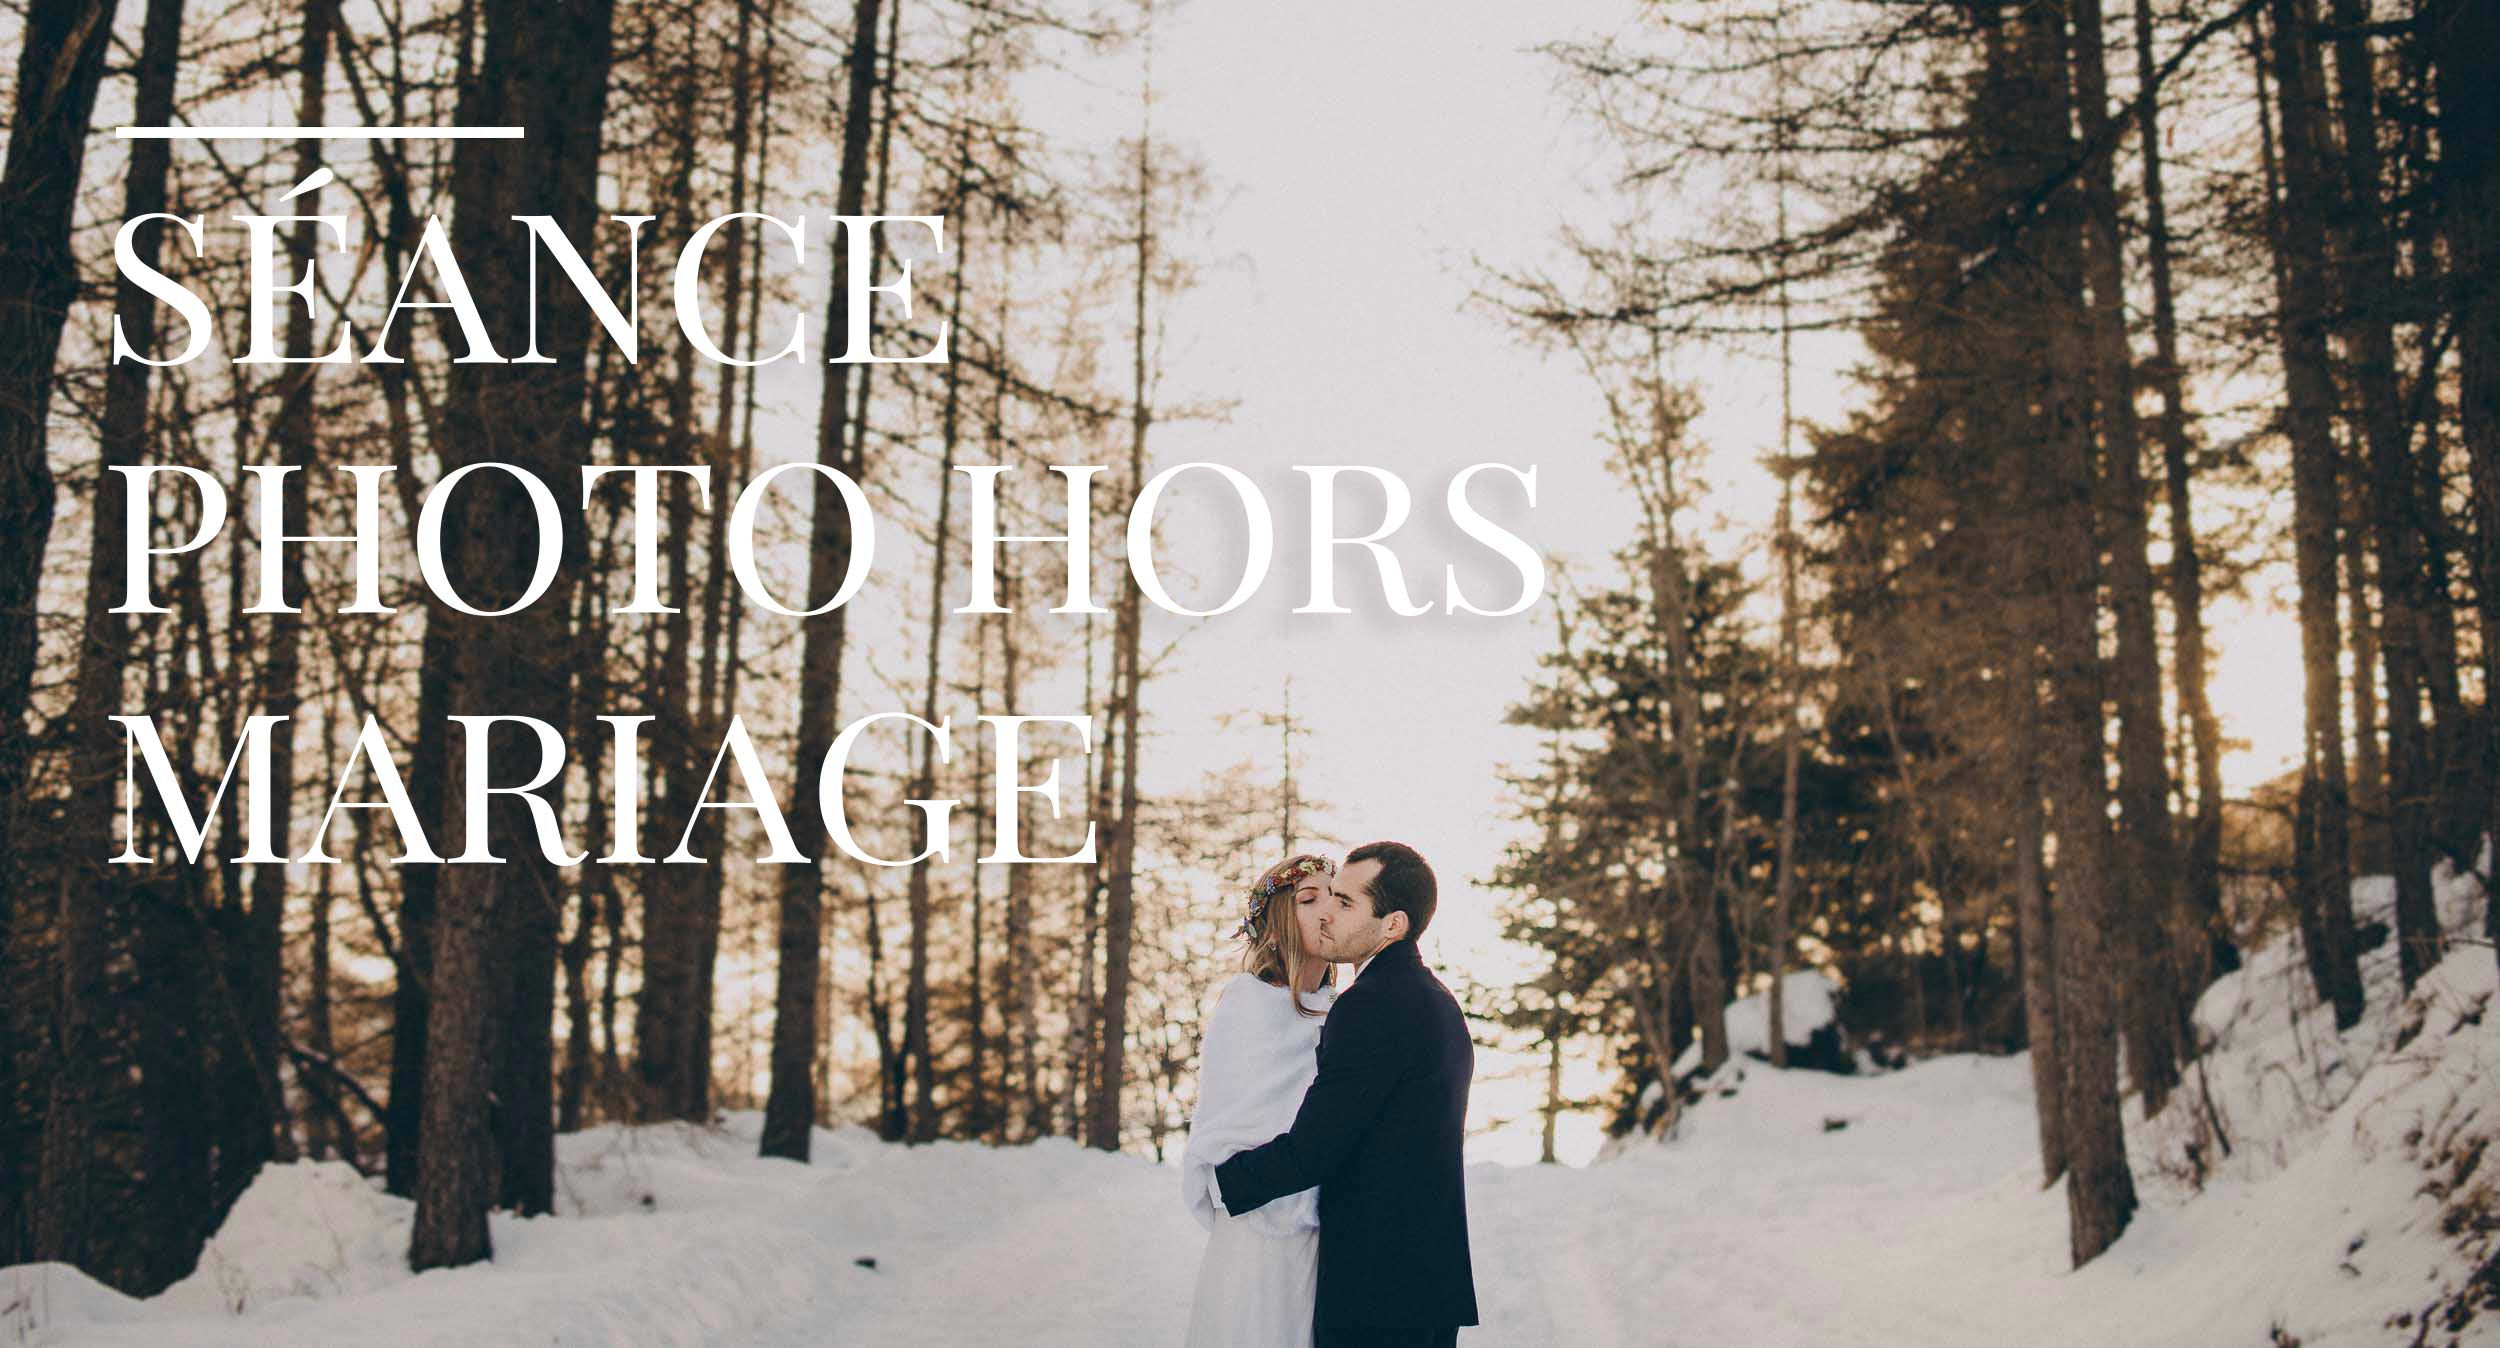 shooting photo de couple hors mariage dans la neige bohème chic - photographe marseille - thomas bertini photography